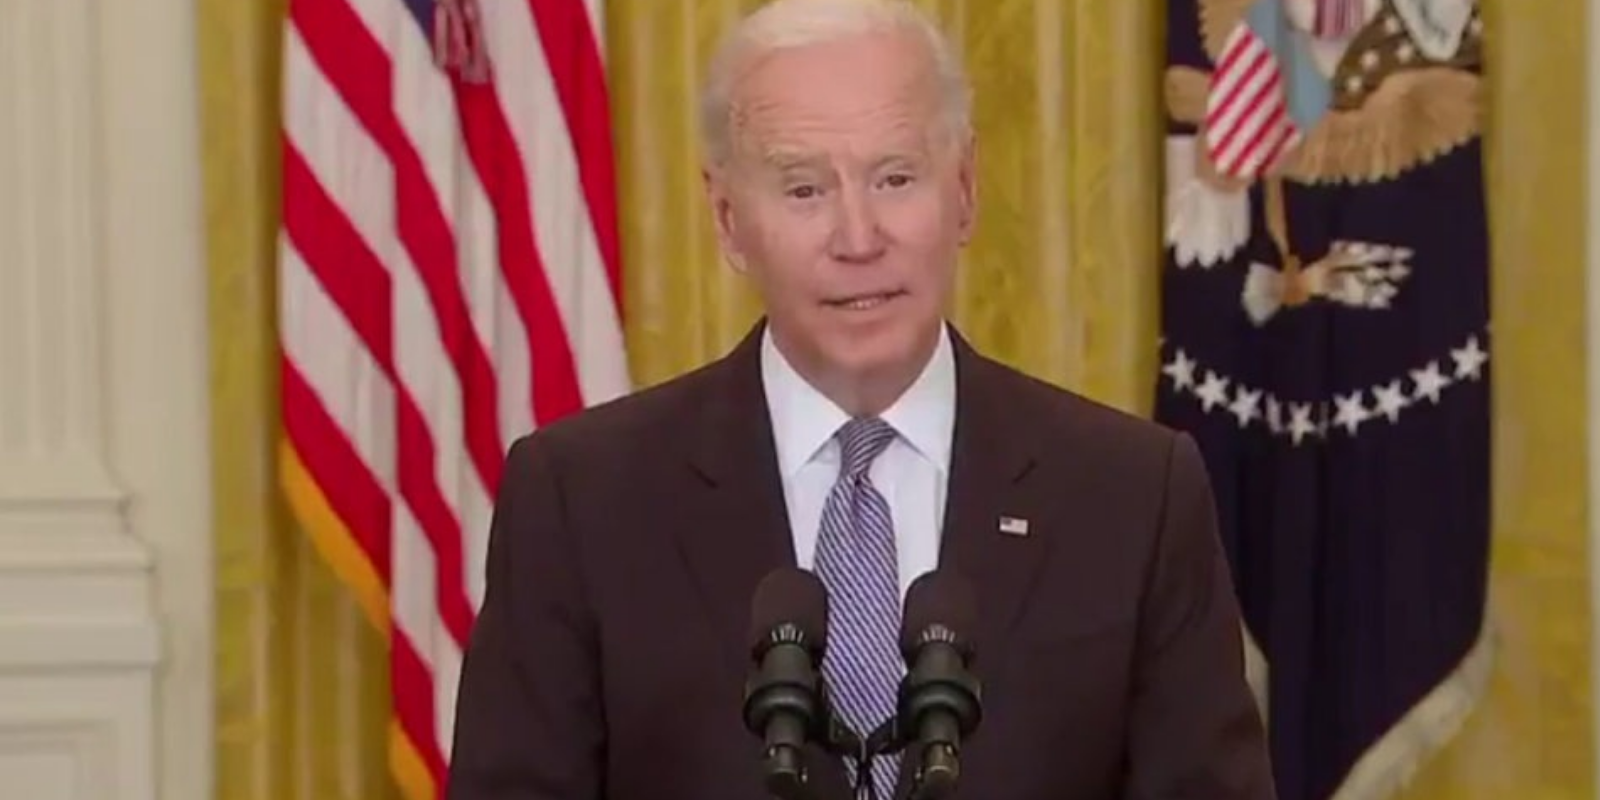 WATCH: Joe Biden says 'those who are not vaccinated will end up paying the price'